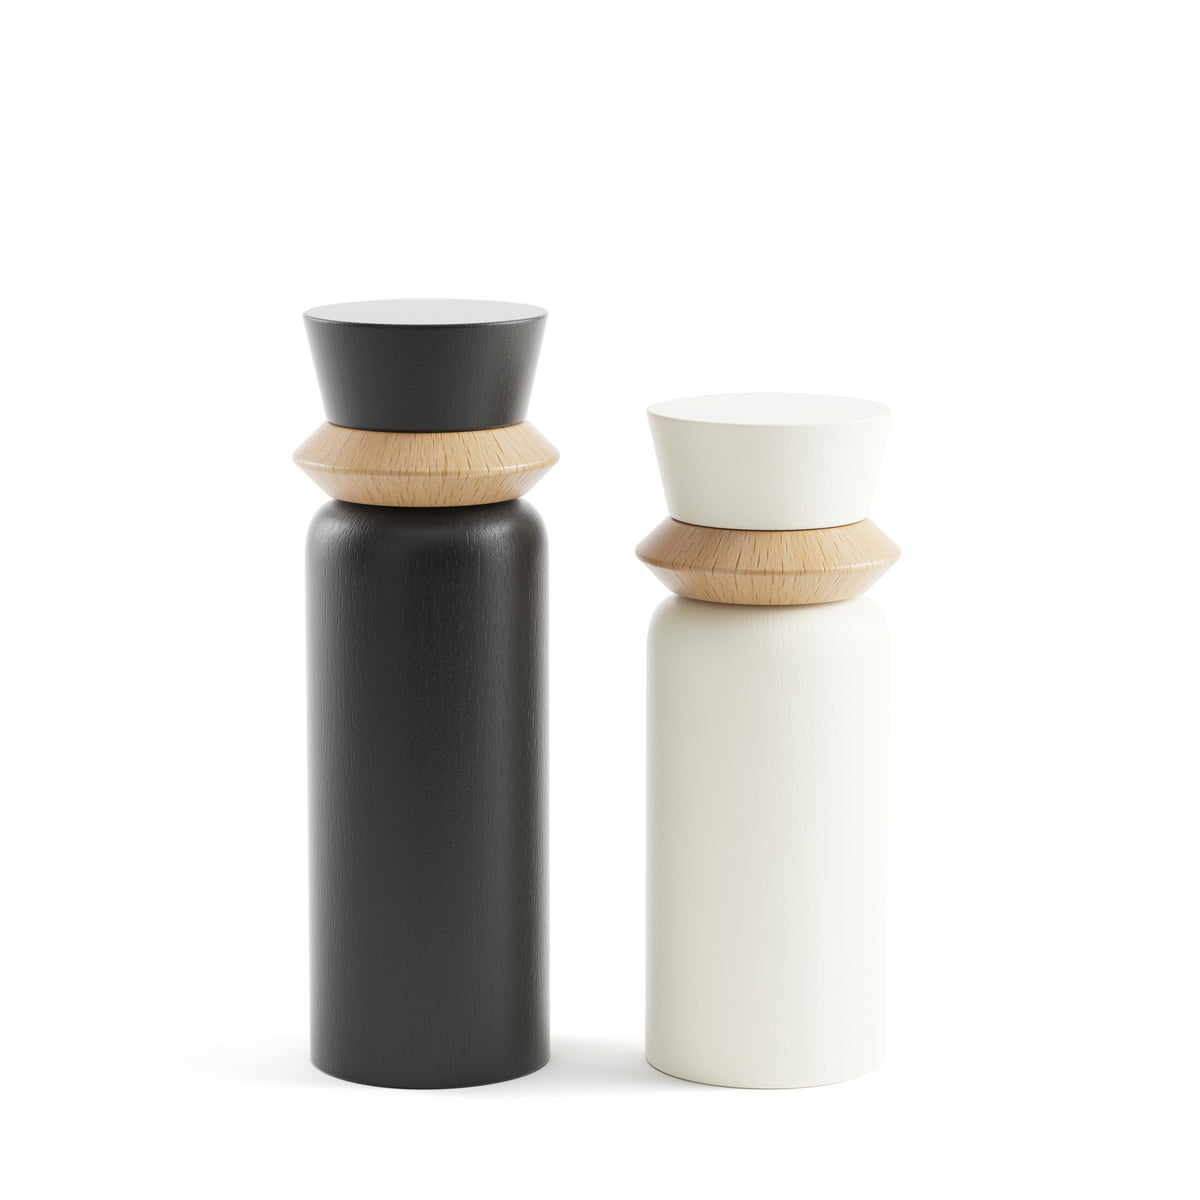 totem mill salt and pepper mill by tylko - totem mill salt and pepper mills (set of ) by tylko in white and